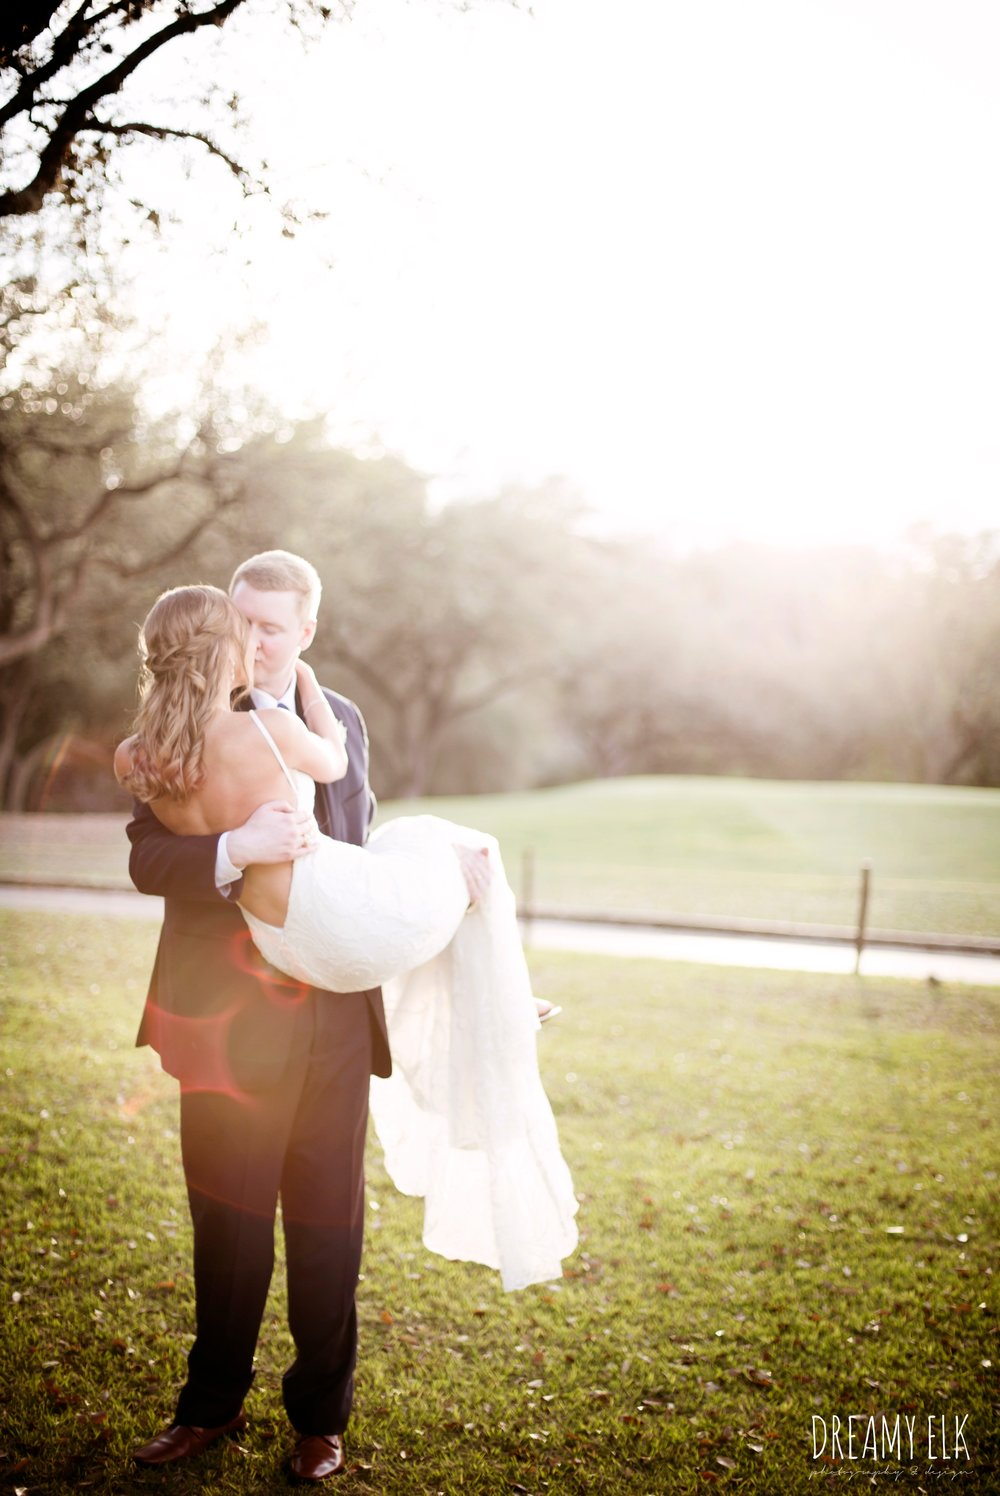 groom holding bride, sunset, romantic, bride and groom, navy suit, backless column sheath wedding dress, cloudy march wedding photo, canyon springs golf club wedding, san antonio, texas {dreamy elk photography and design}